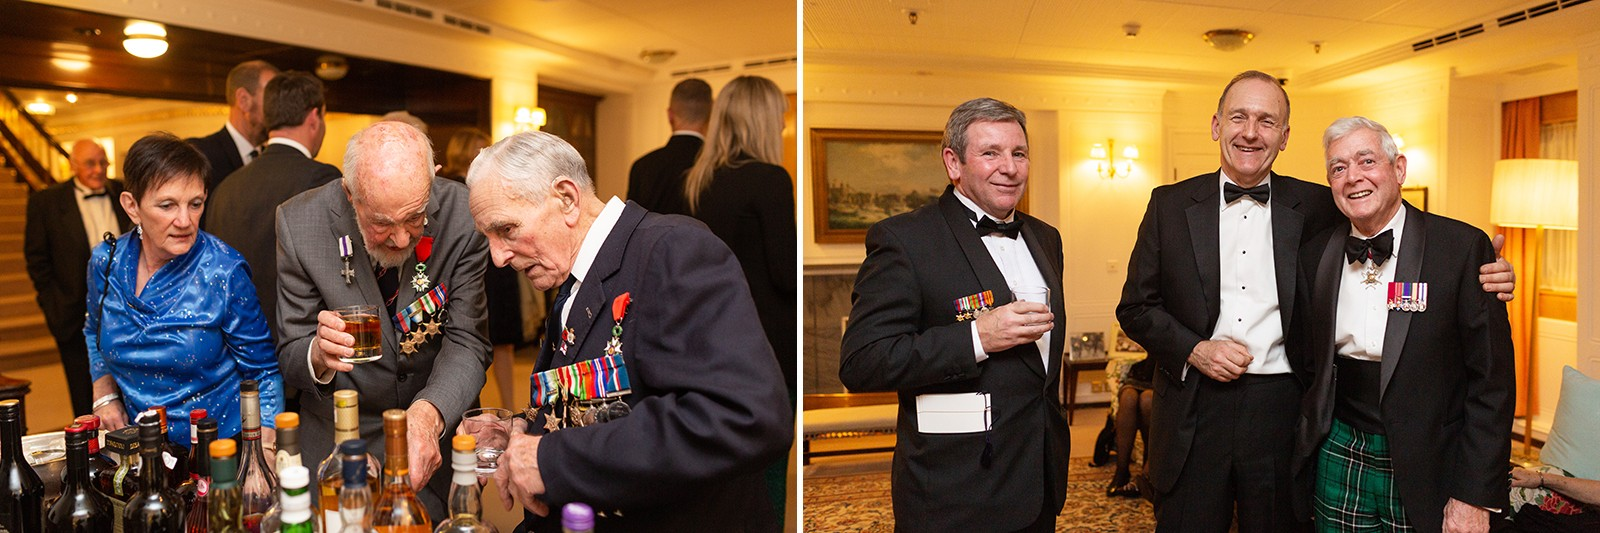 D-Day Revisited Christmas Reunion